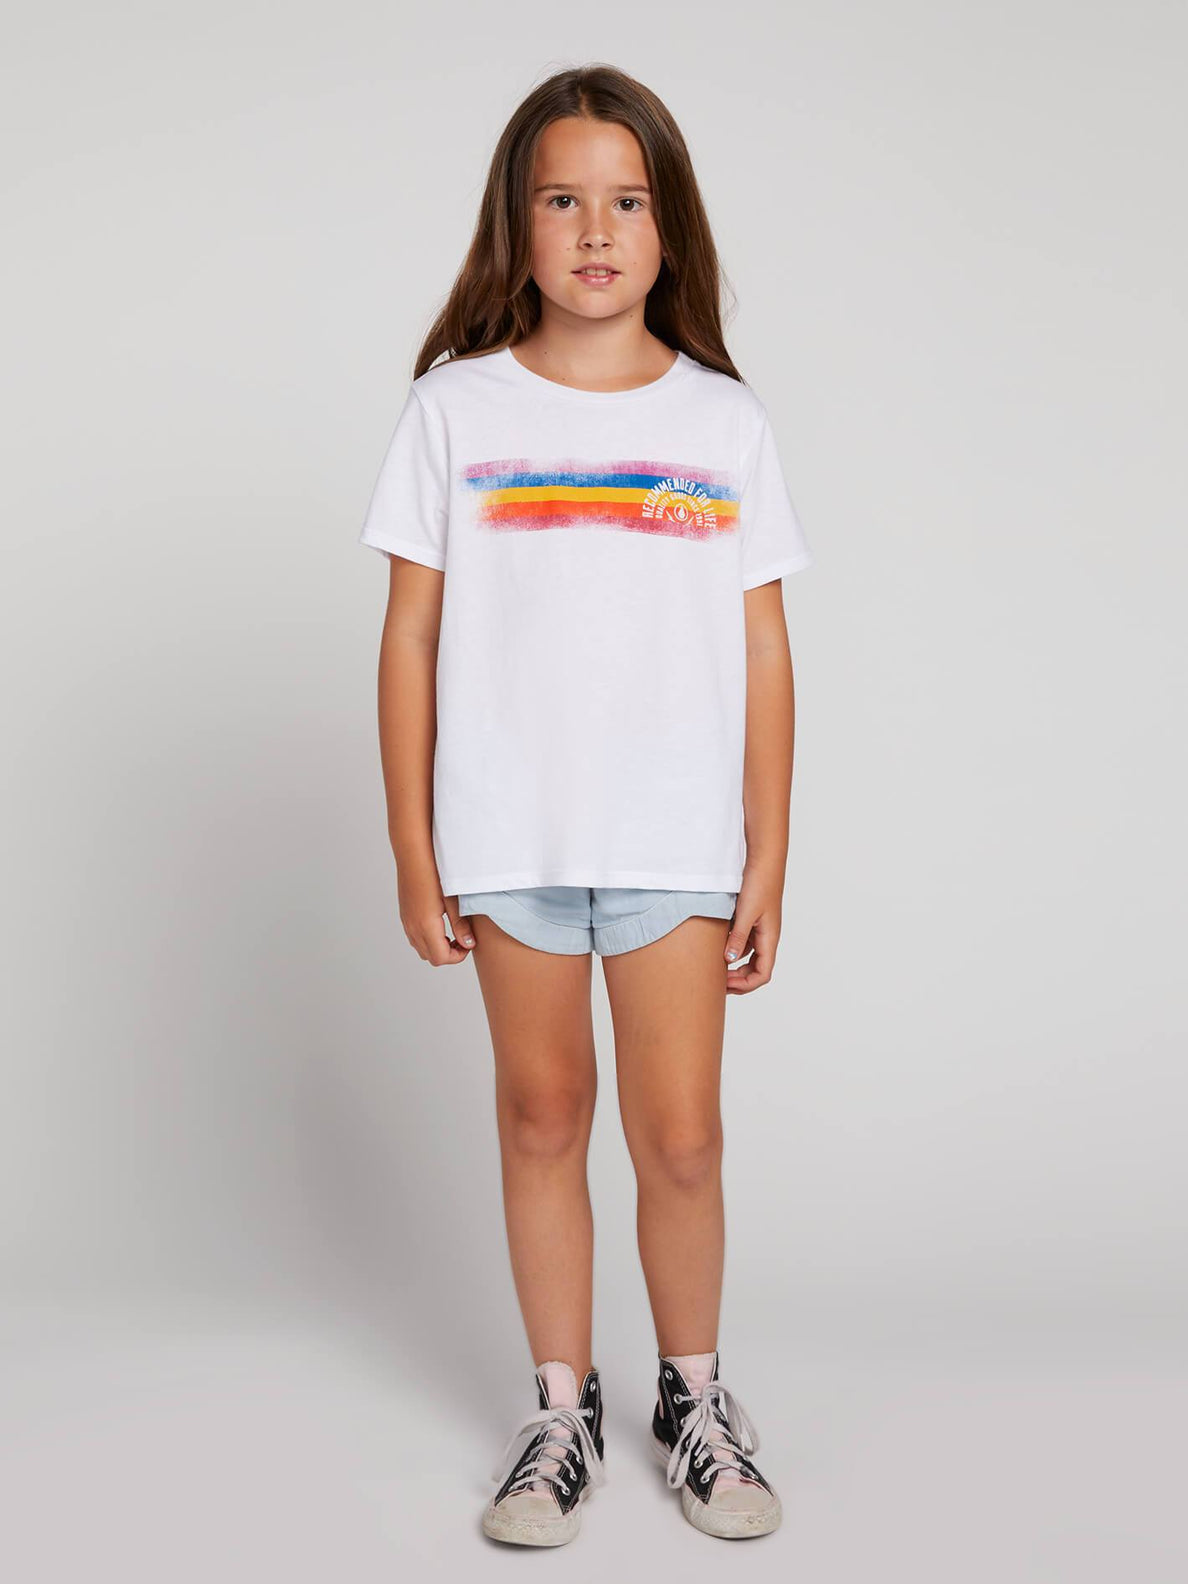 Big Girls Last Party Tee In White, Front View